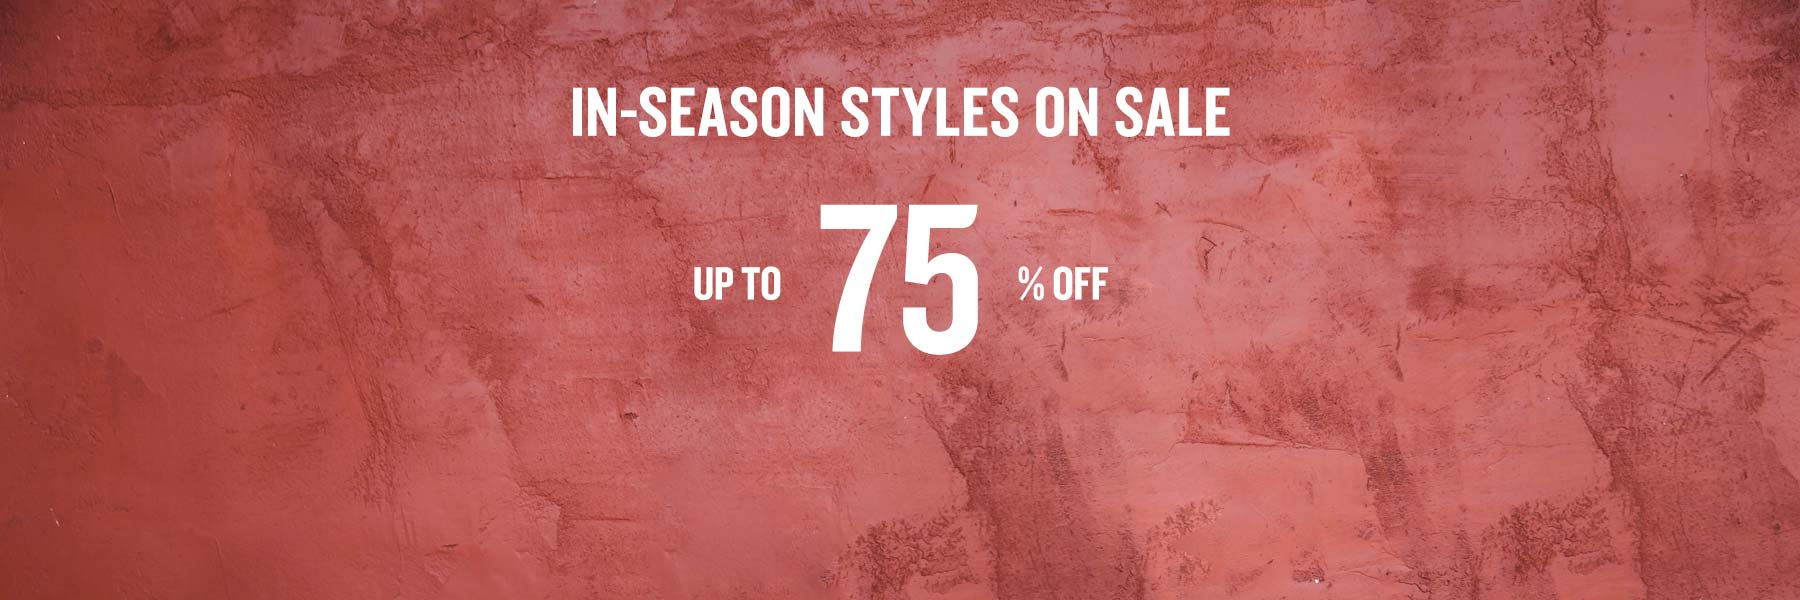 In-season styles on sale up to 75% off